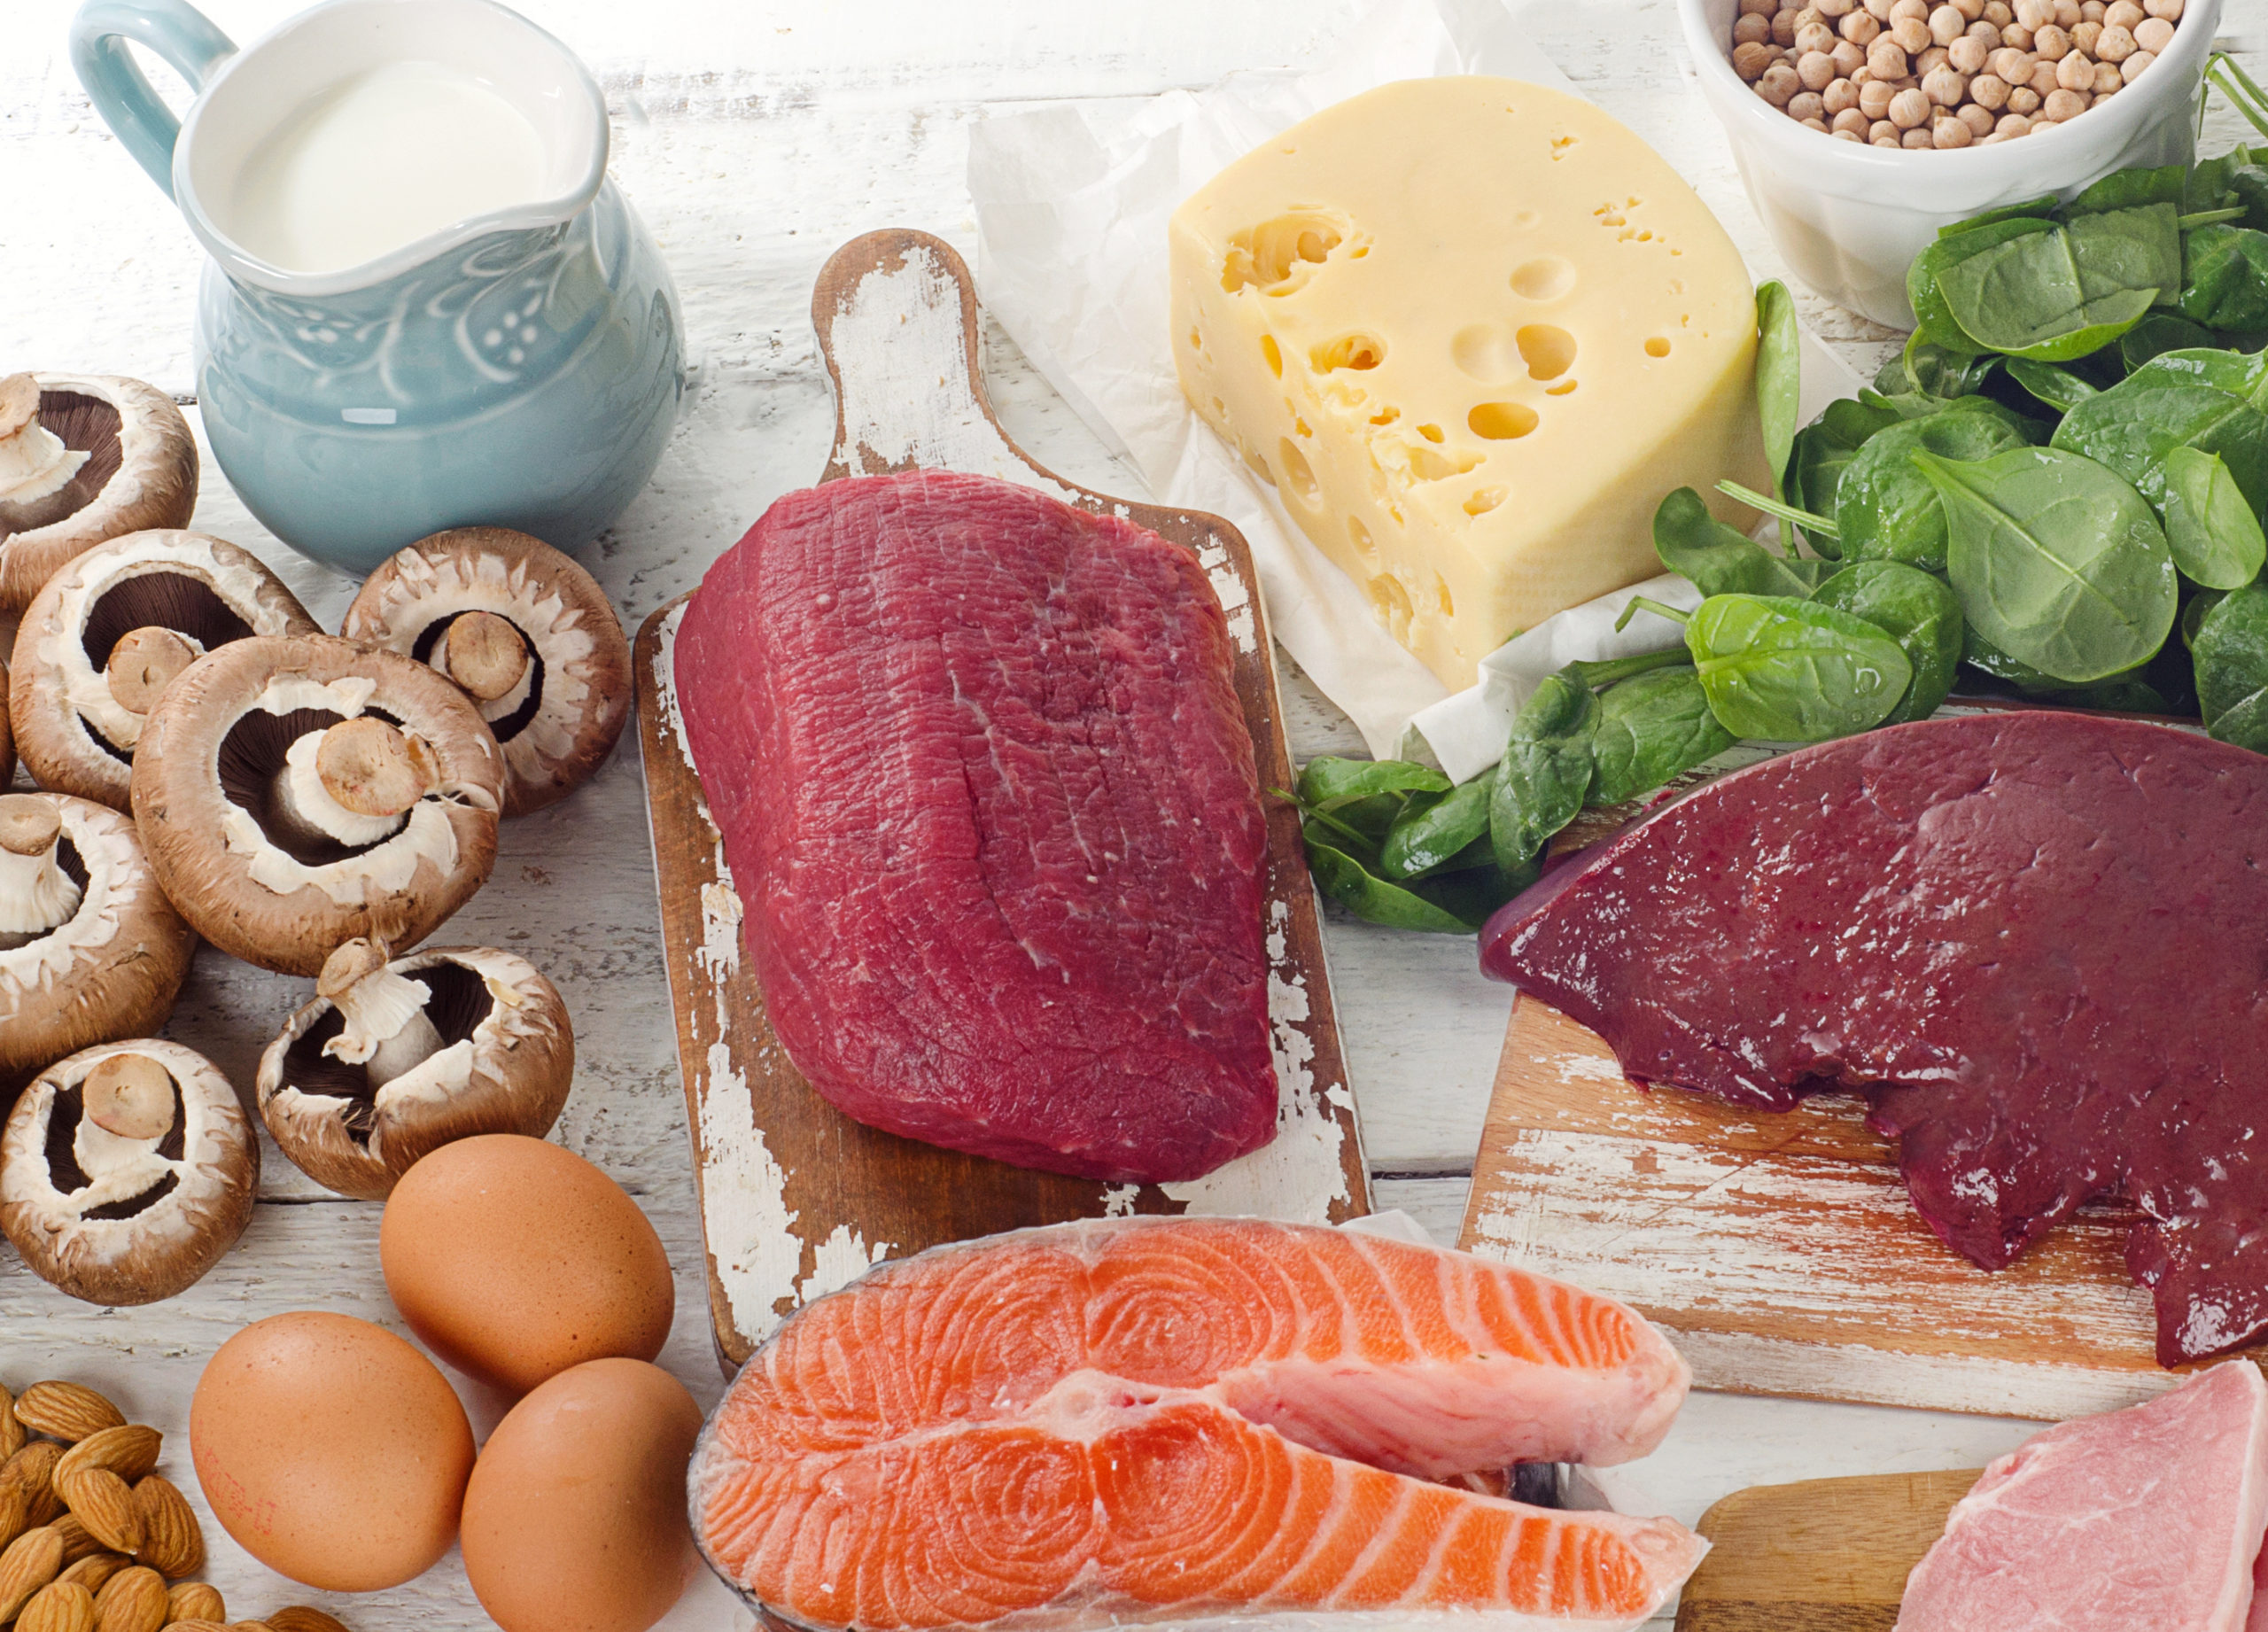 foods high in vitamin B2, including milk yogurt eggs salmon organ meats cheese spinach beans mushrooms